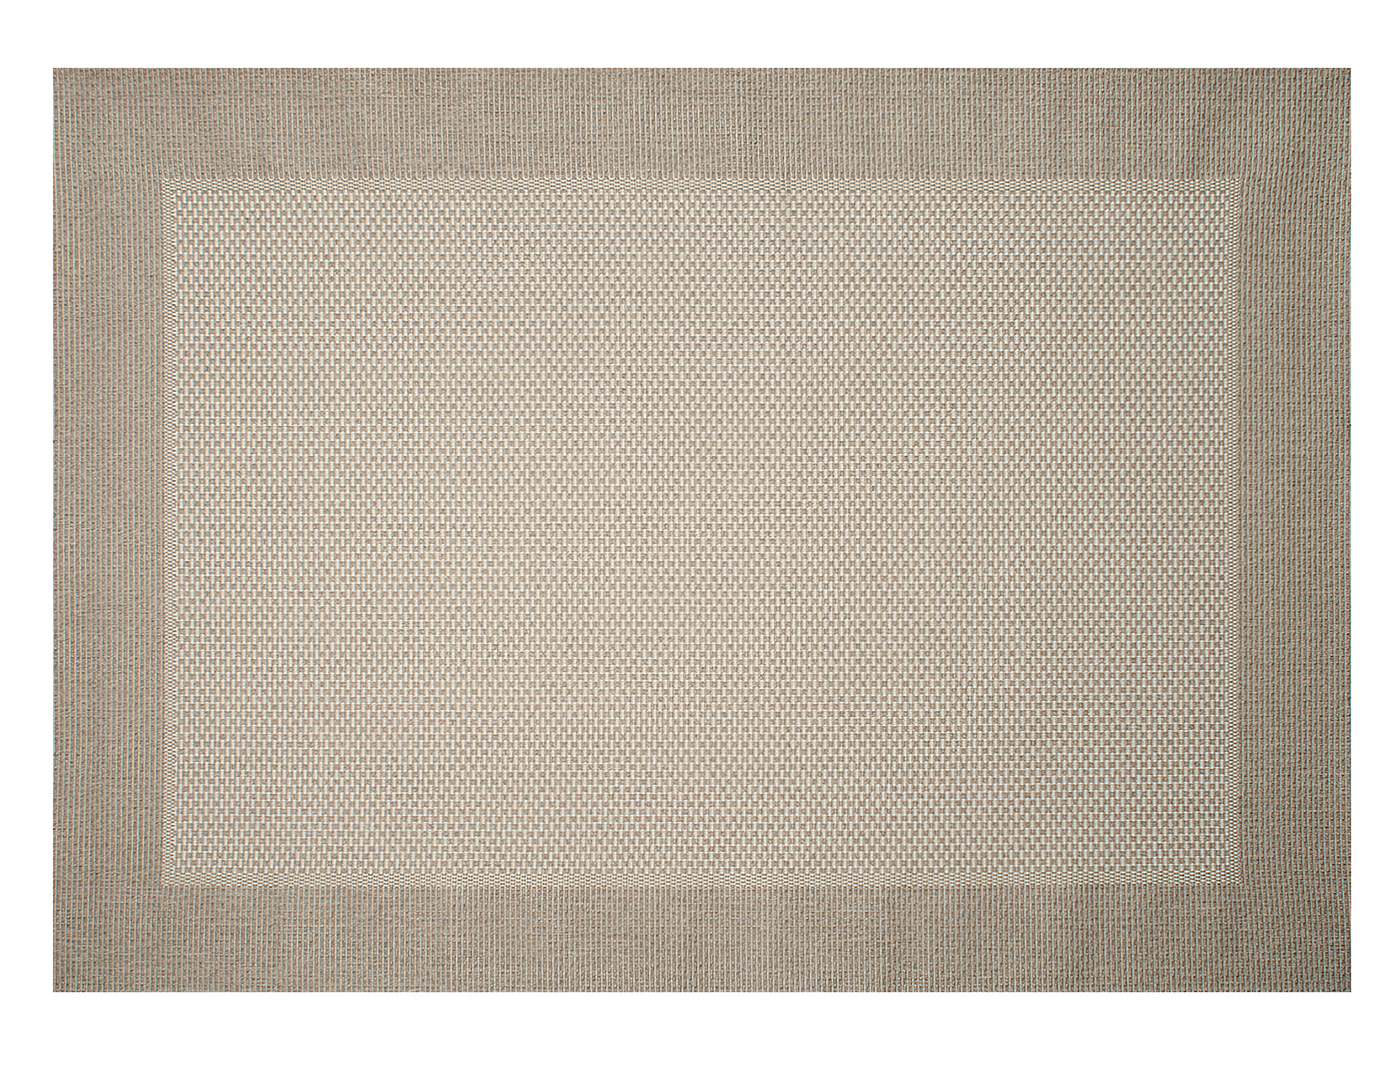 Savannah Cottonwood Patio Area Rug